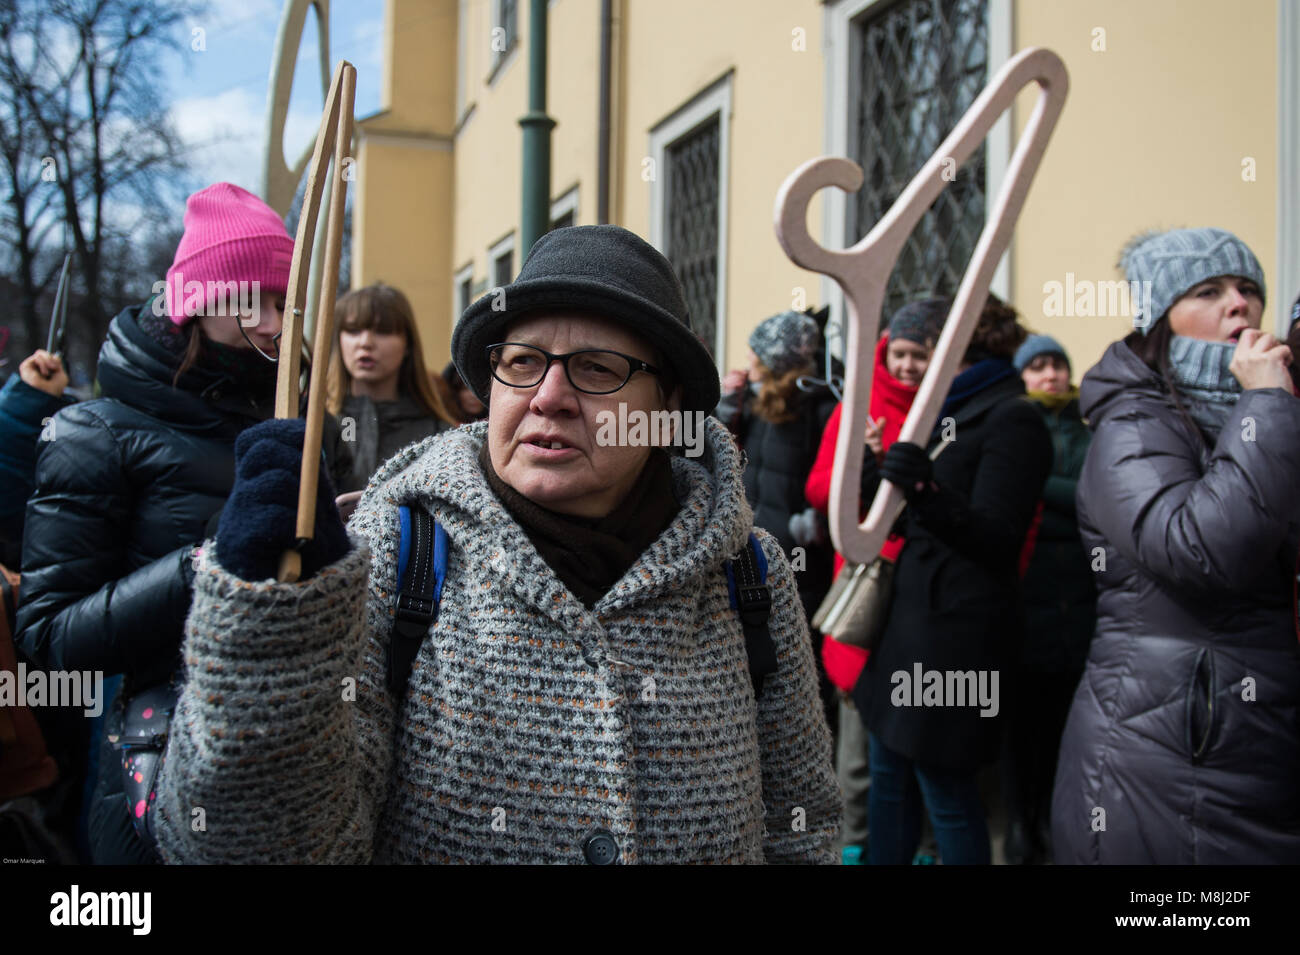 Abortion Protest Protester Stockfotos & Abortion Protest Protester ...